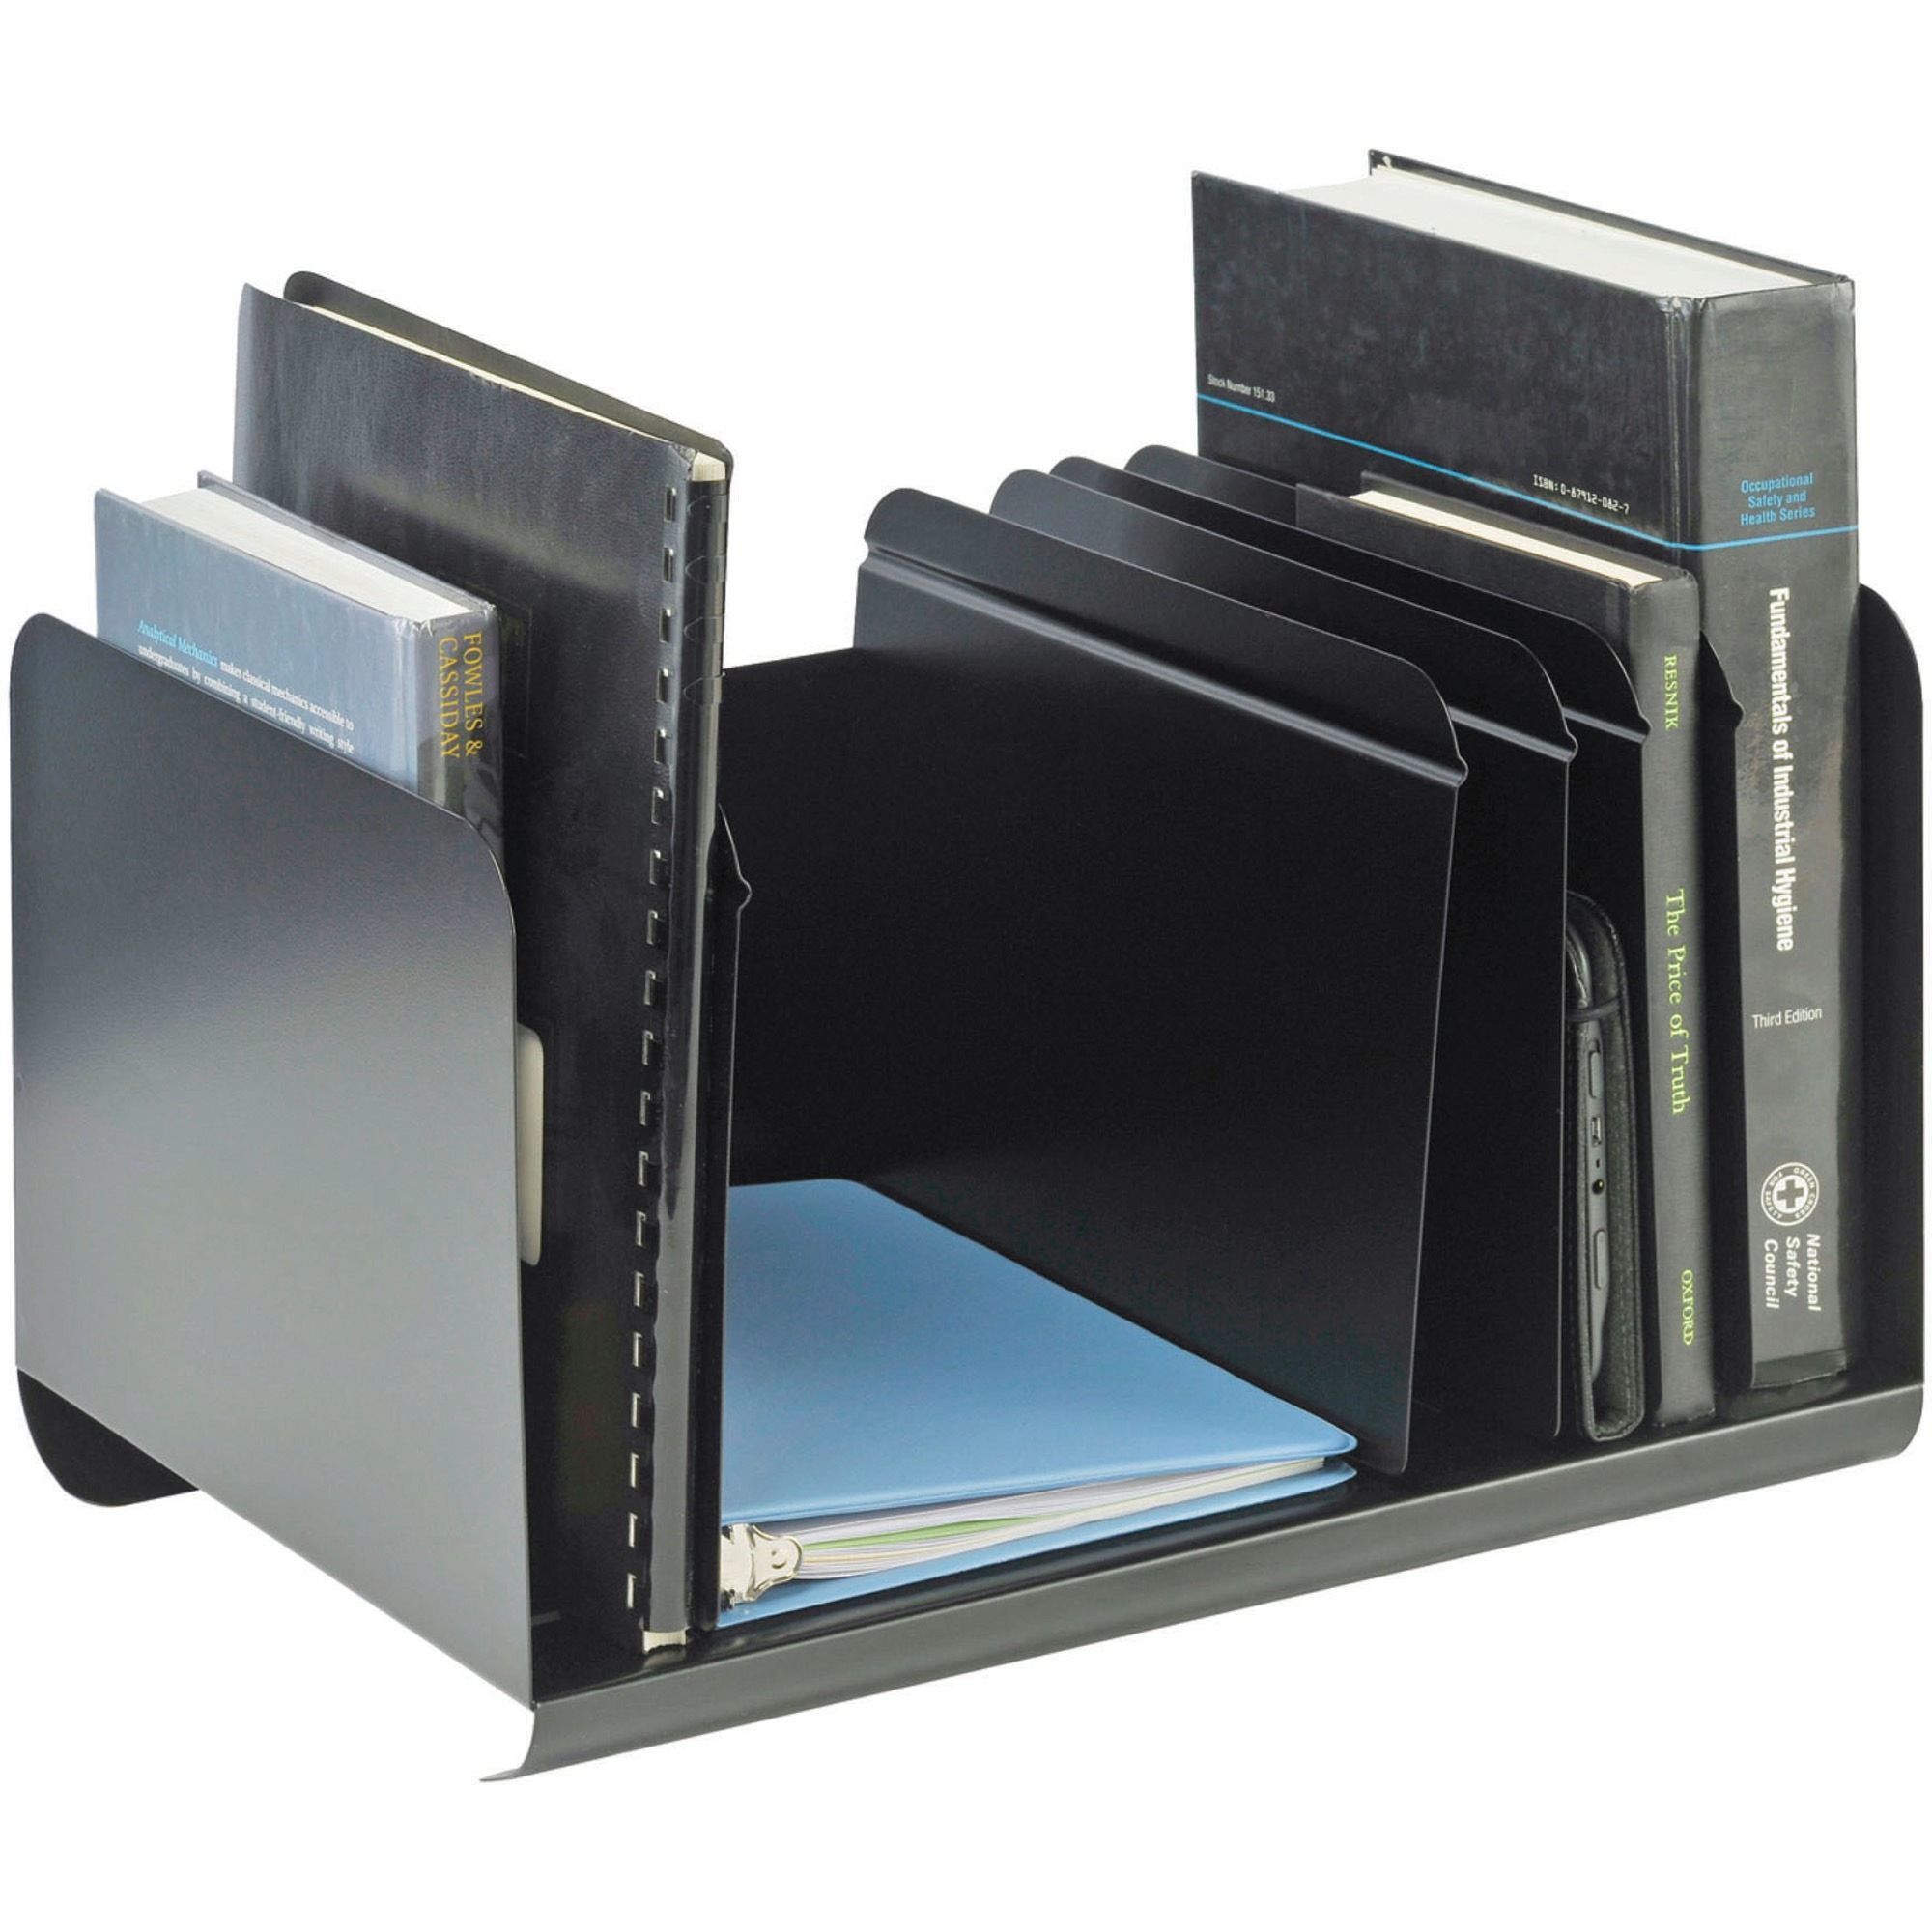 MMF Adjustable Dividers Book Rack by MMF INDUSTRIES